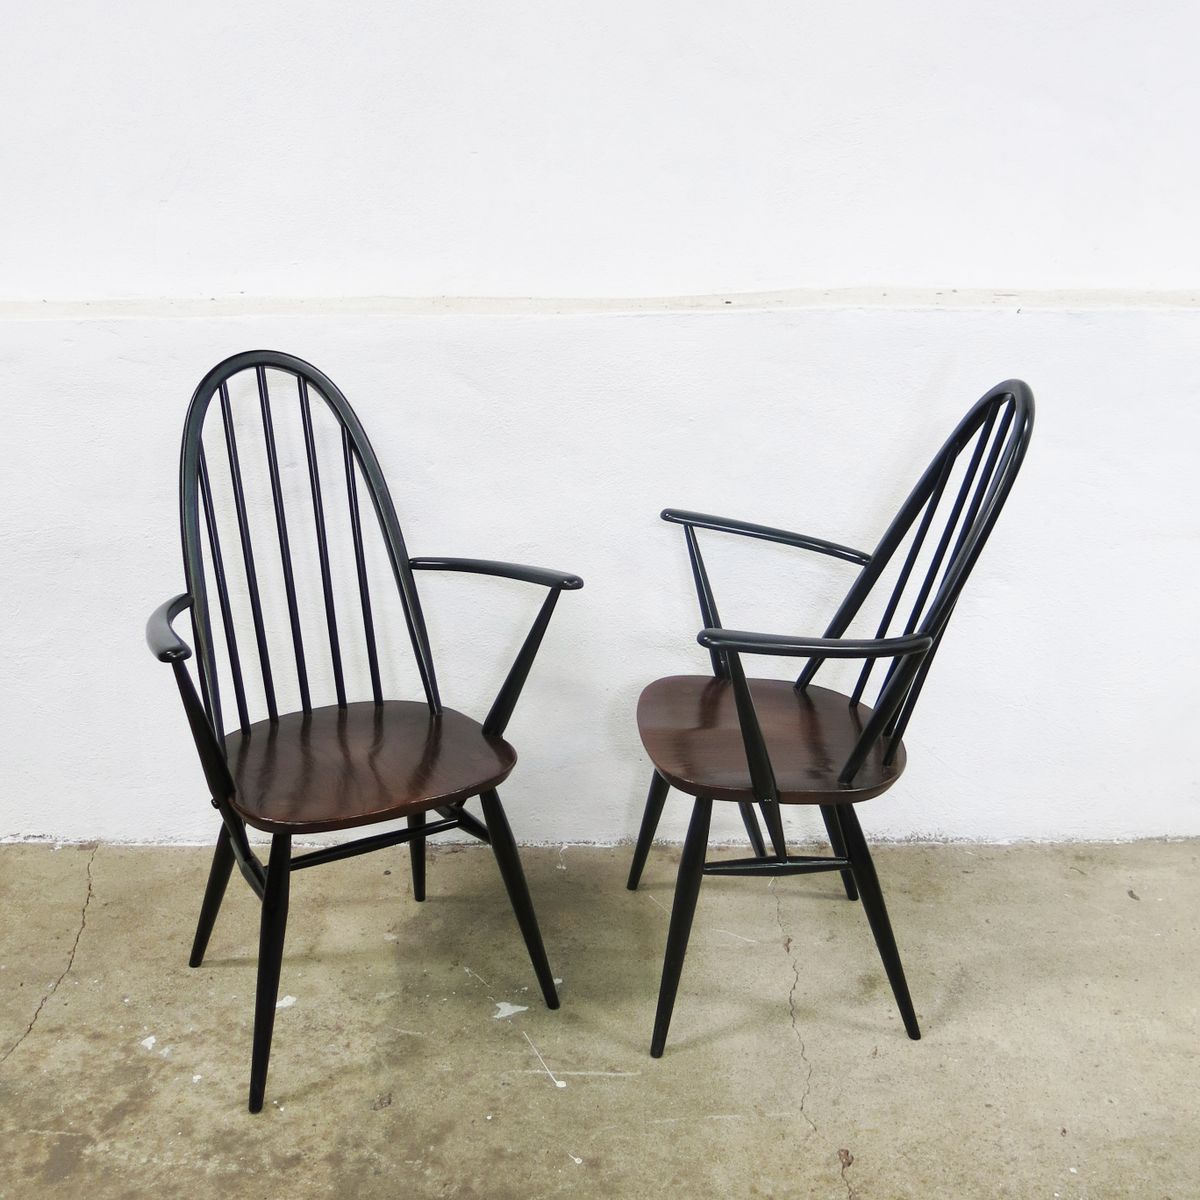 Vintage Quaker Back Windsor Armchairs By Lucian Ercolani For Ercol 1970s Se